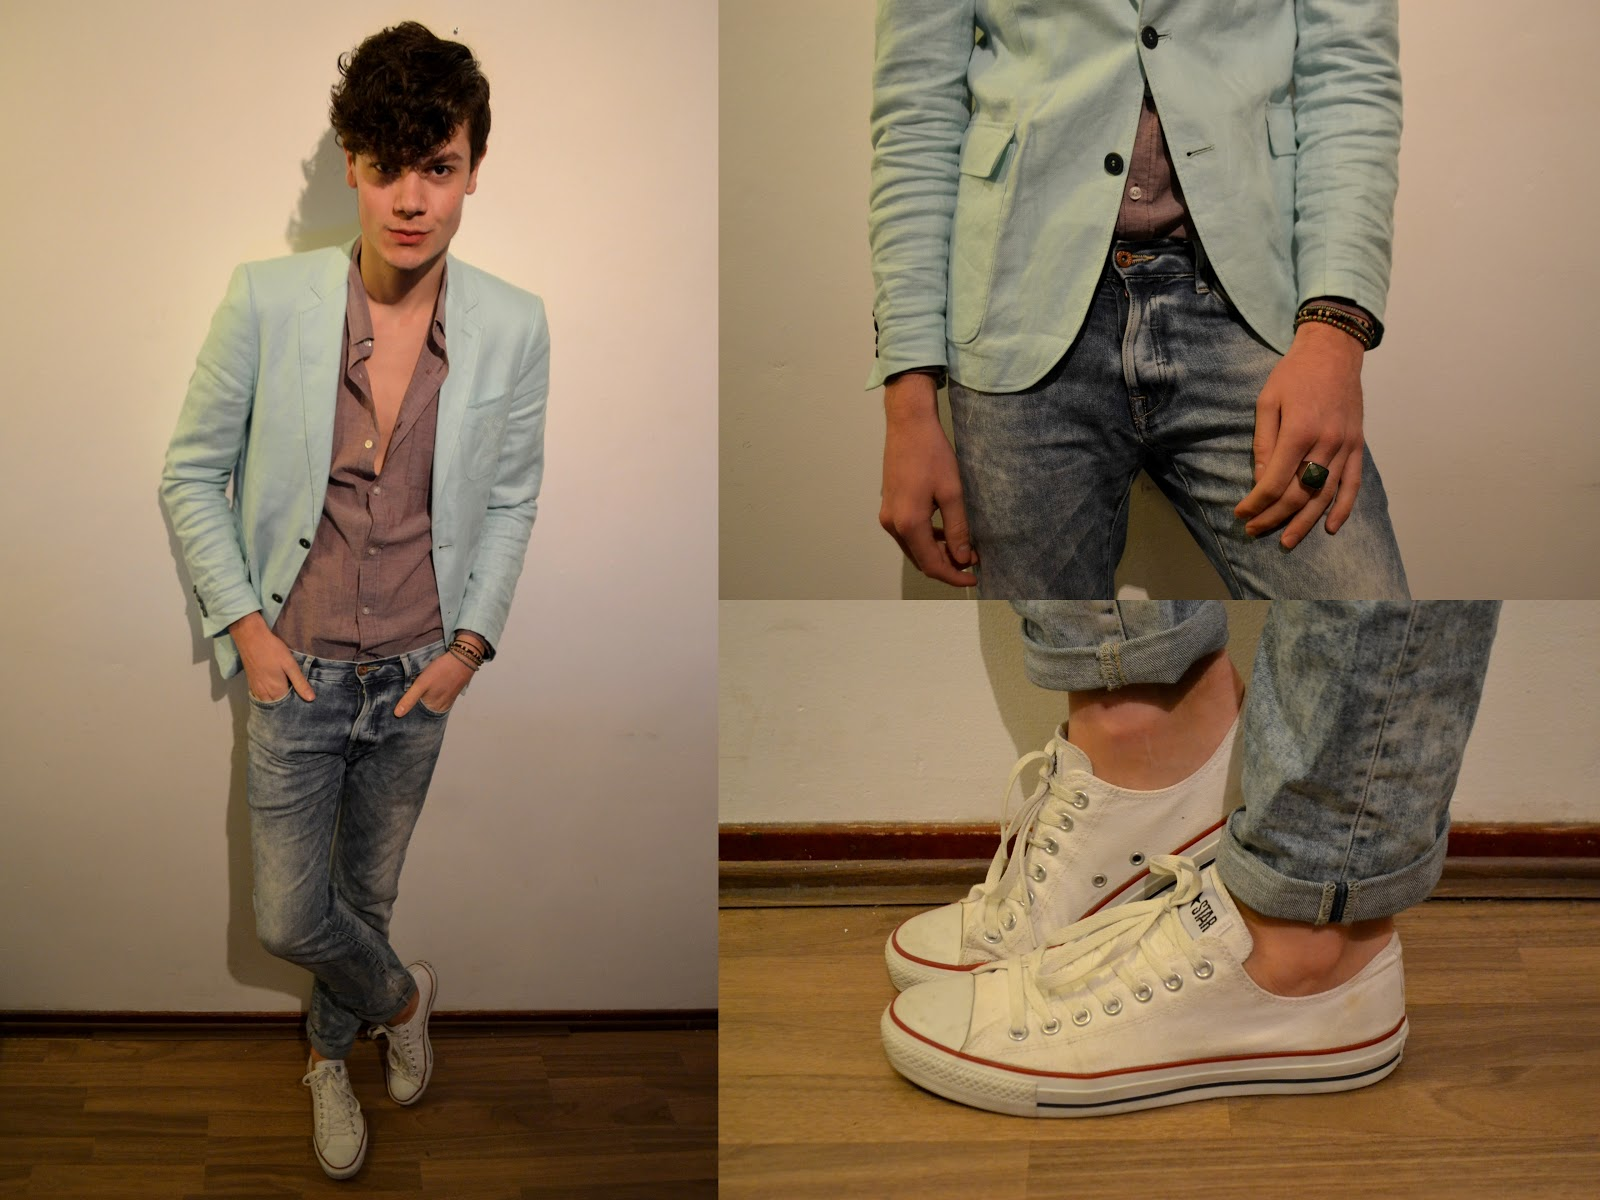 Khaki skinny jeans with converse